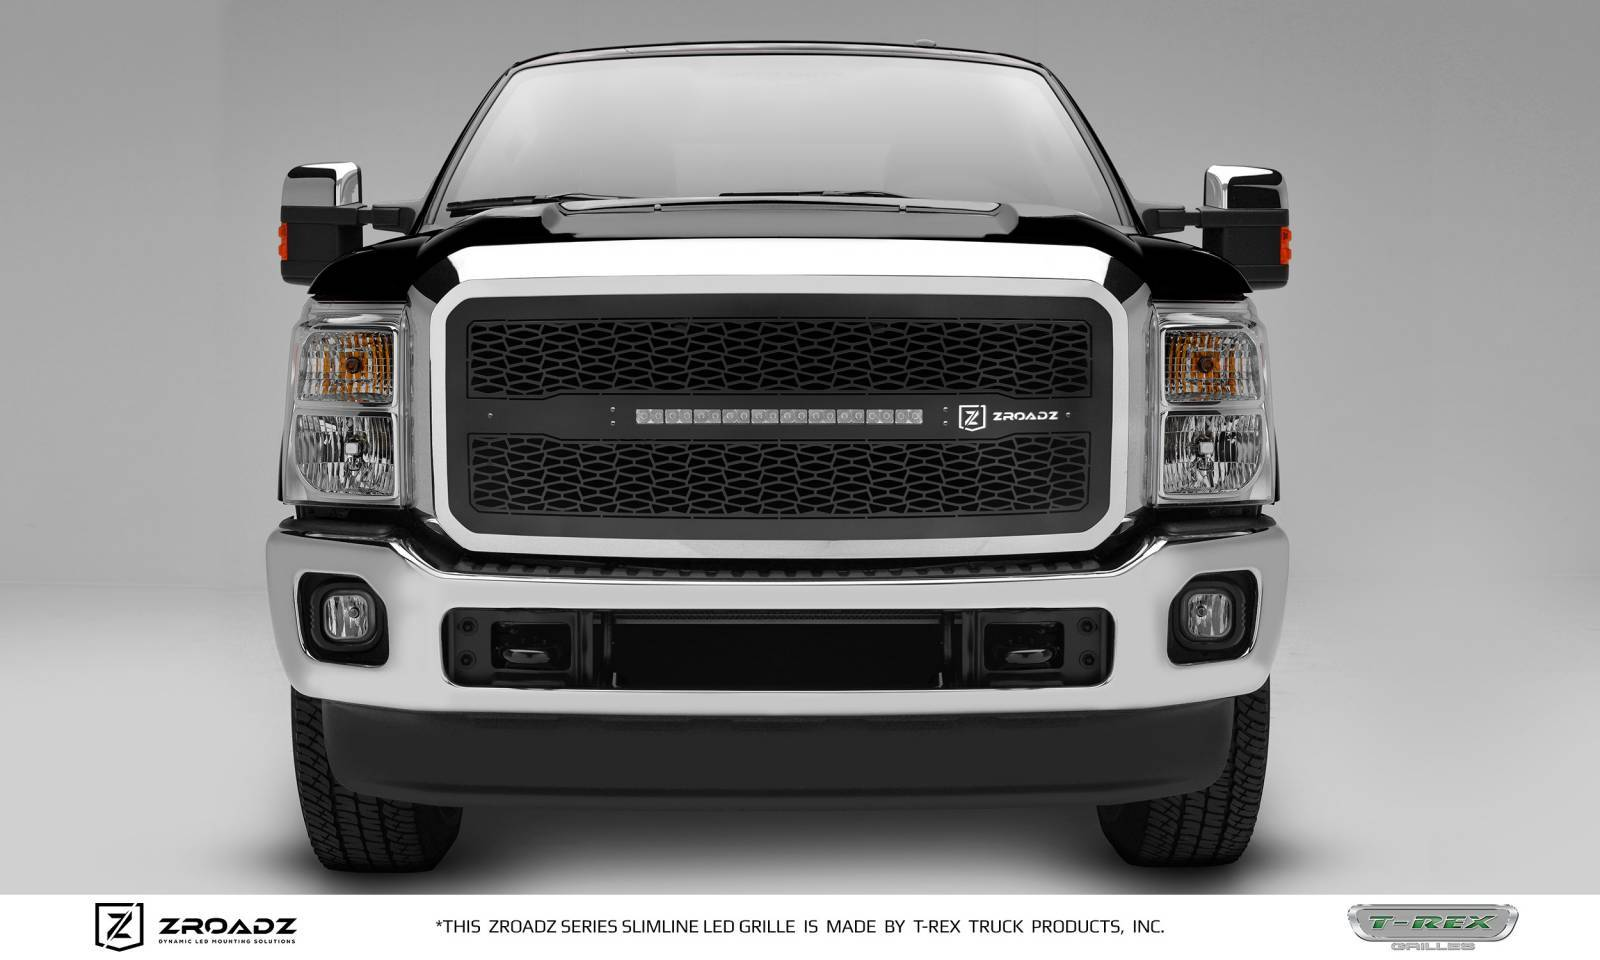 T-REX Grilles - Ford F250 / F350 Super Duty - ZROADZ Series - Main